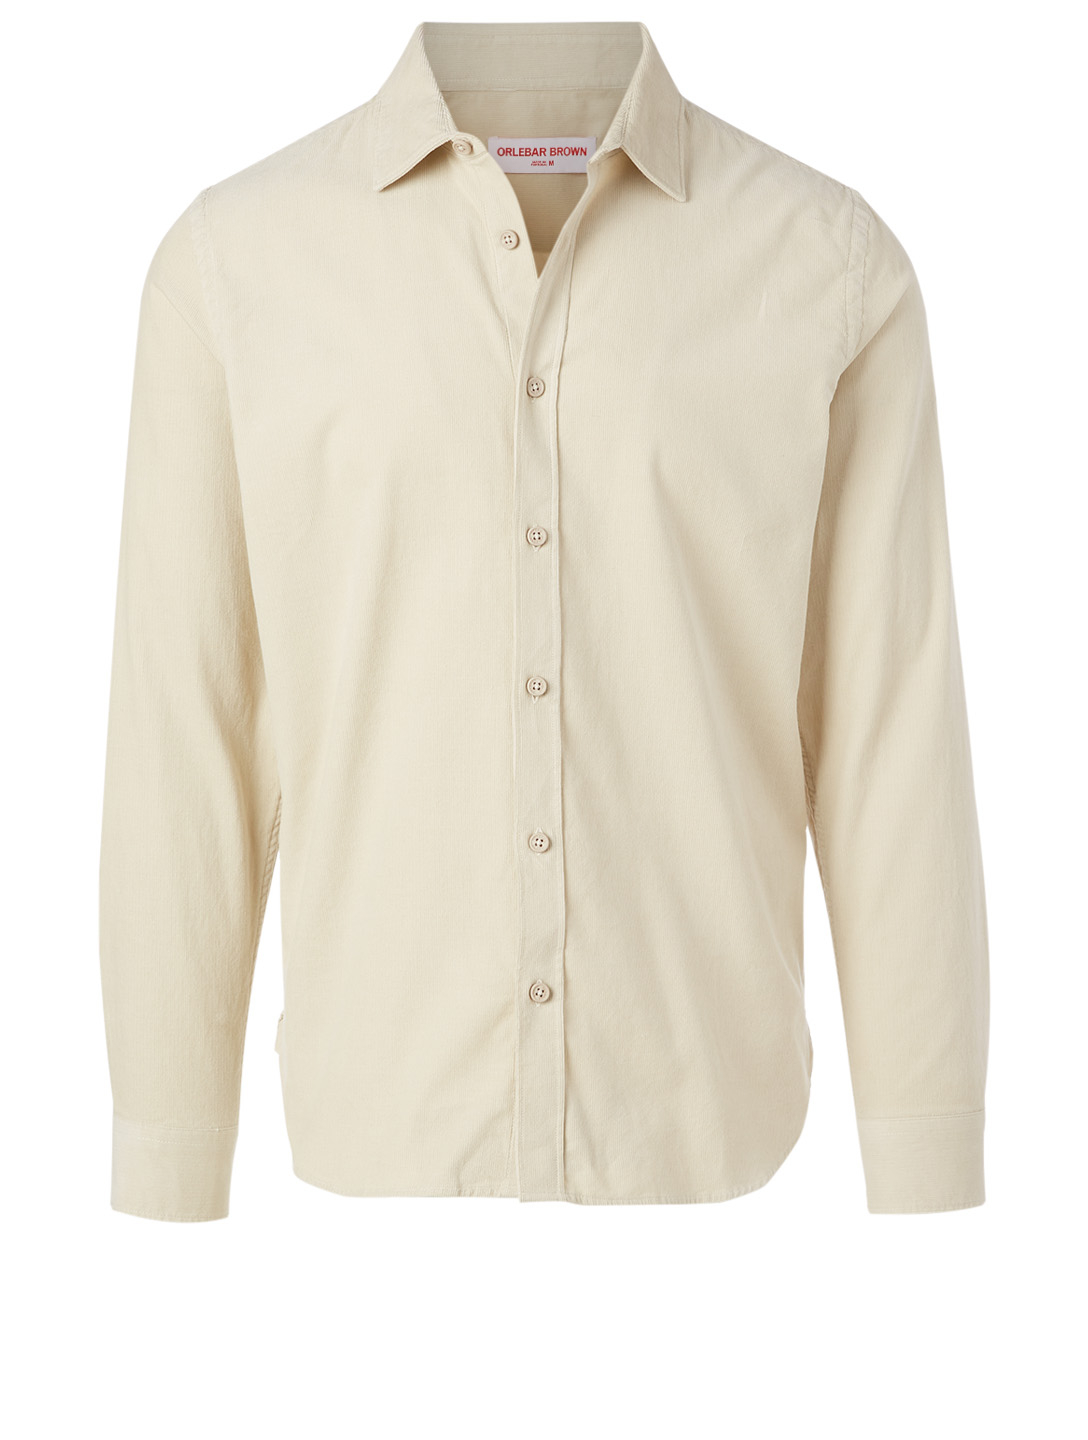 ORLEBAR BROWN Giles Corduroy Tailored Shirt Men's Beige